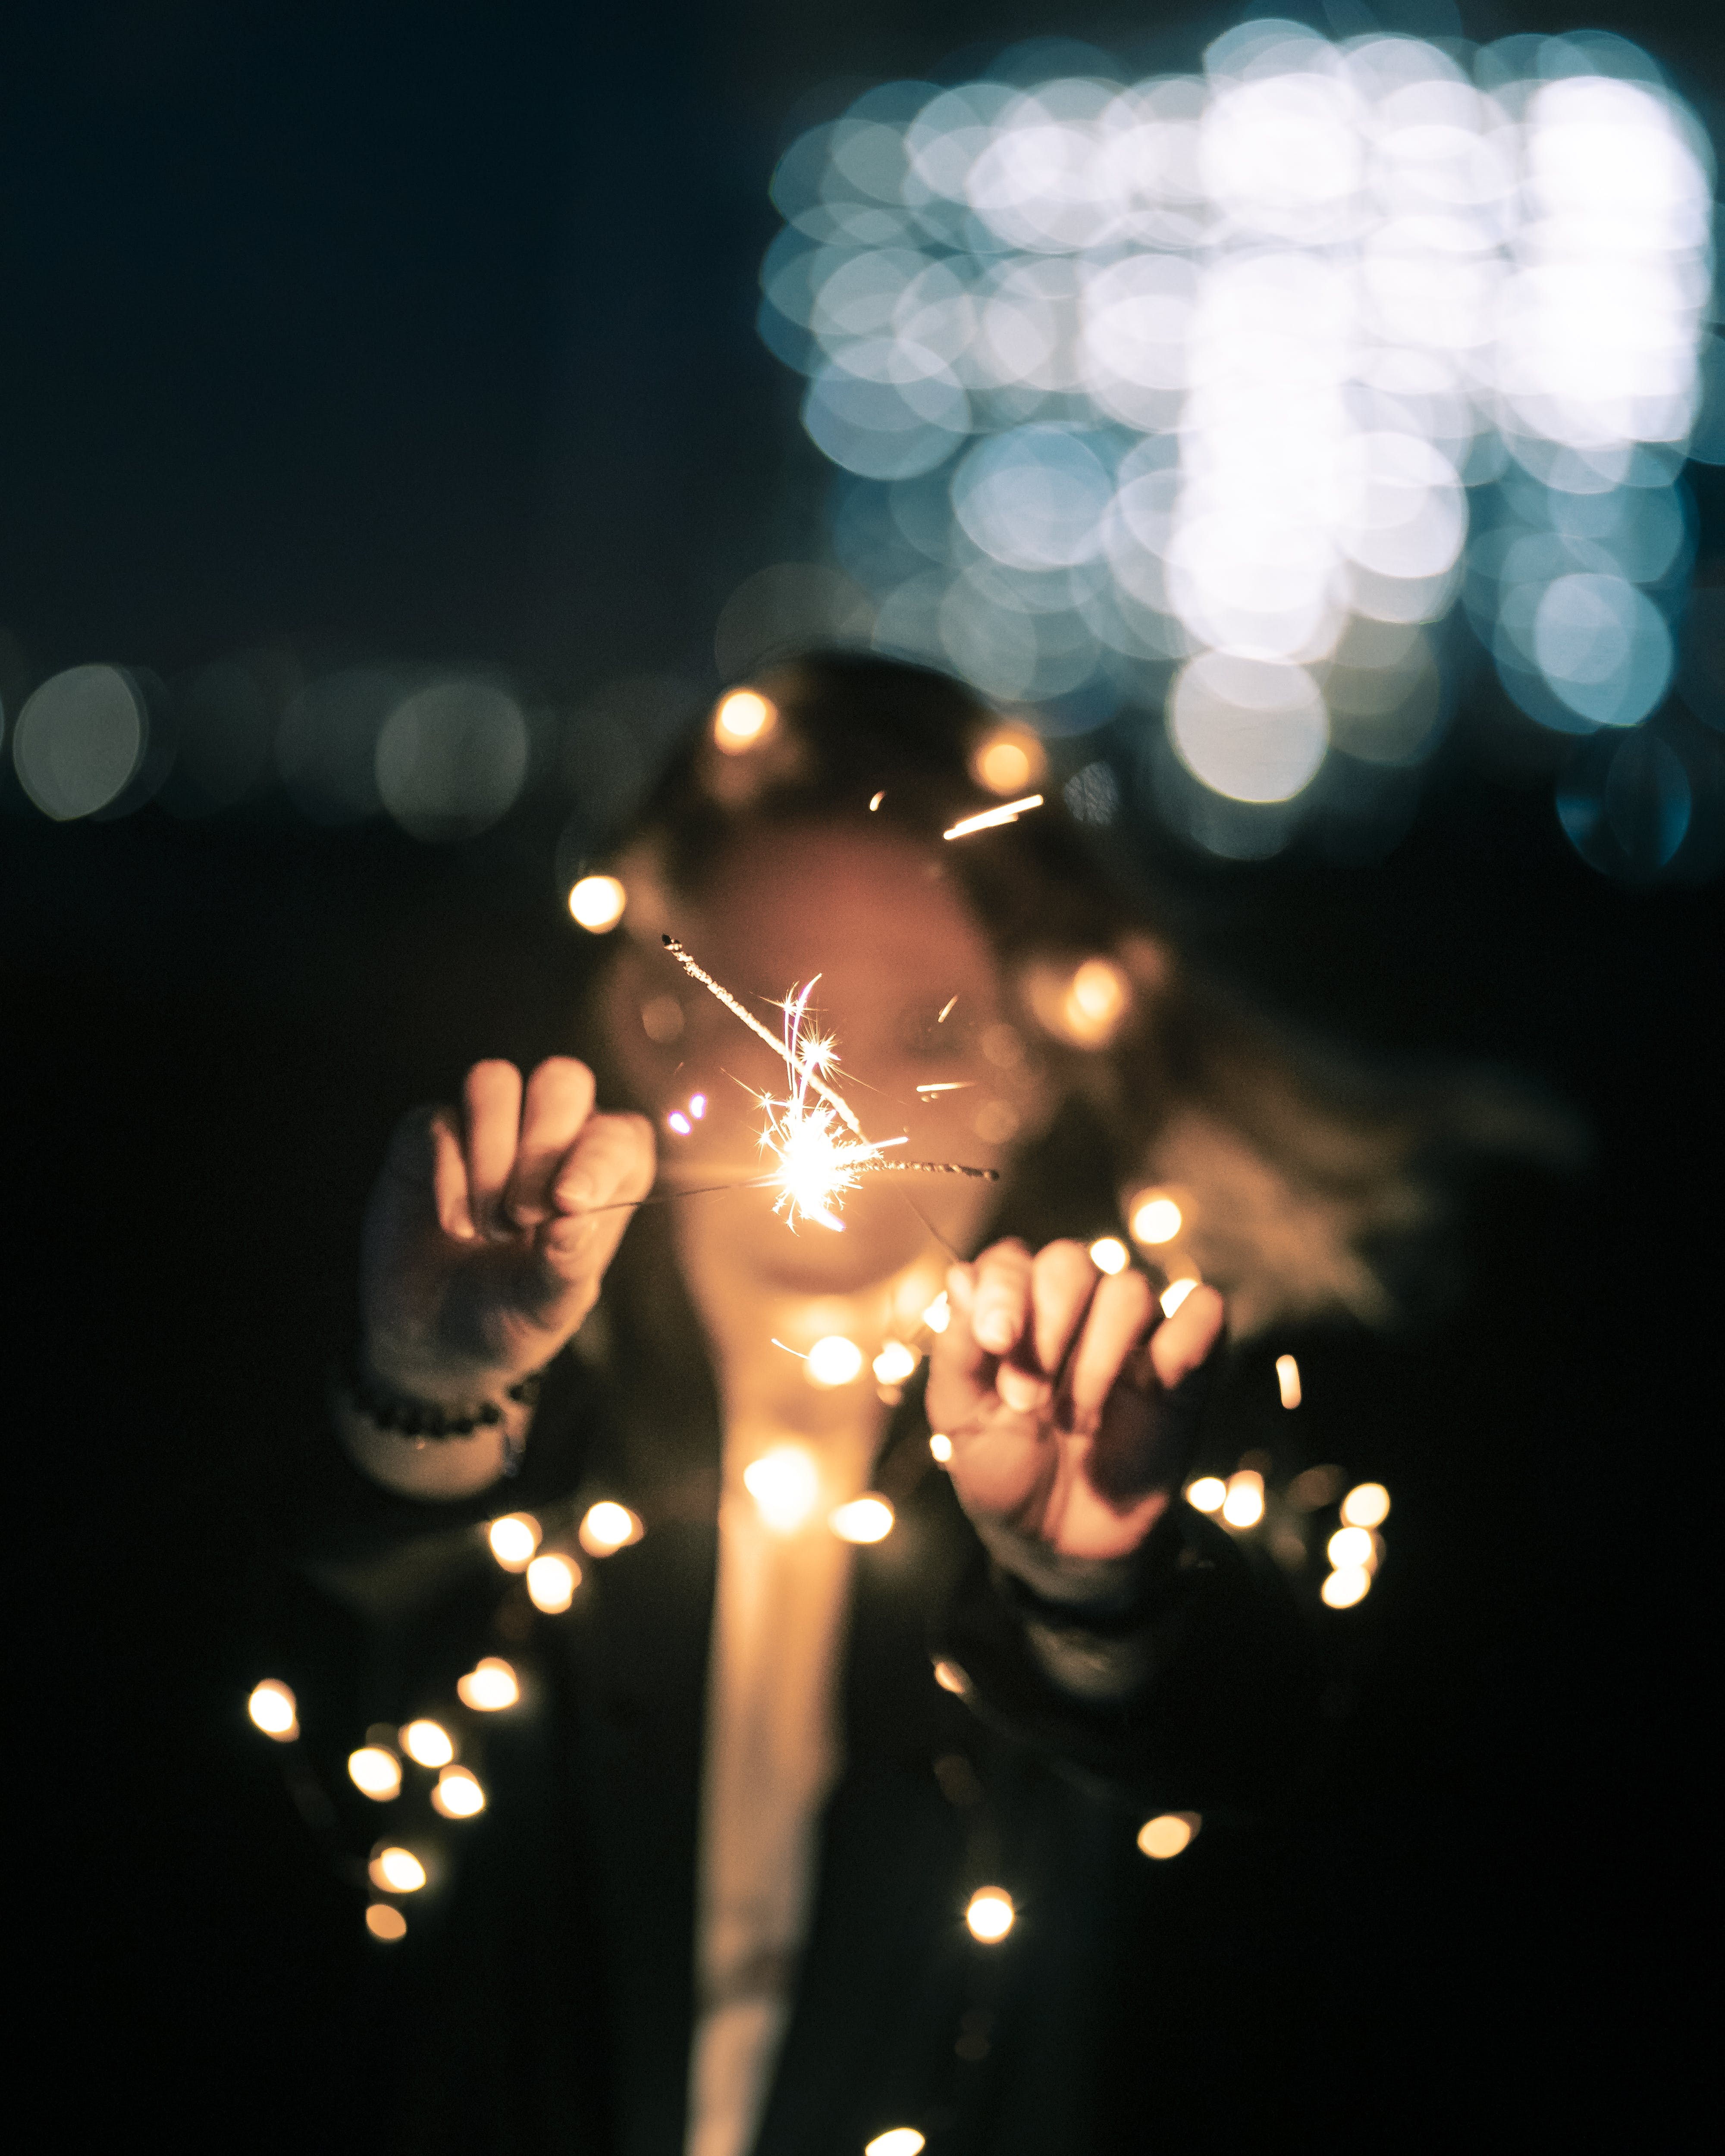 Selective Focus Photo of Woman Holding Sparklers at Night